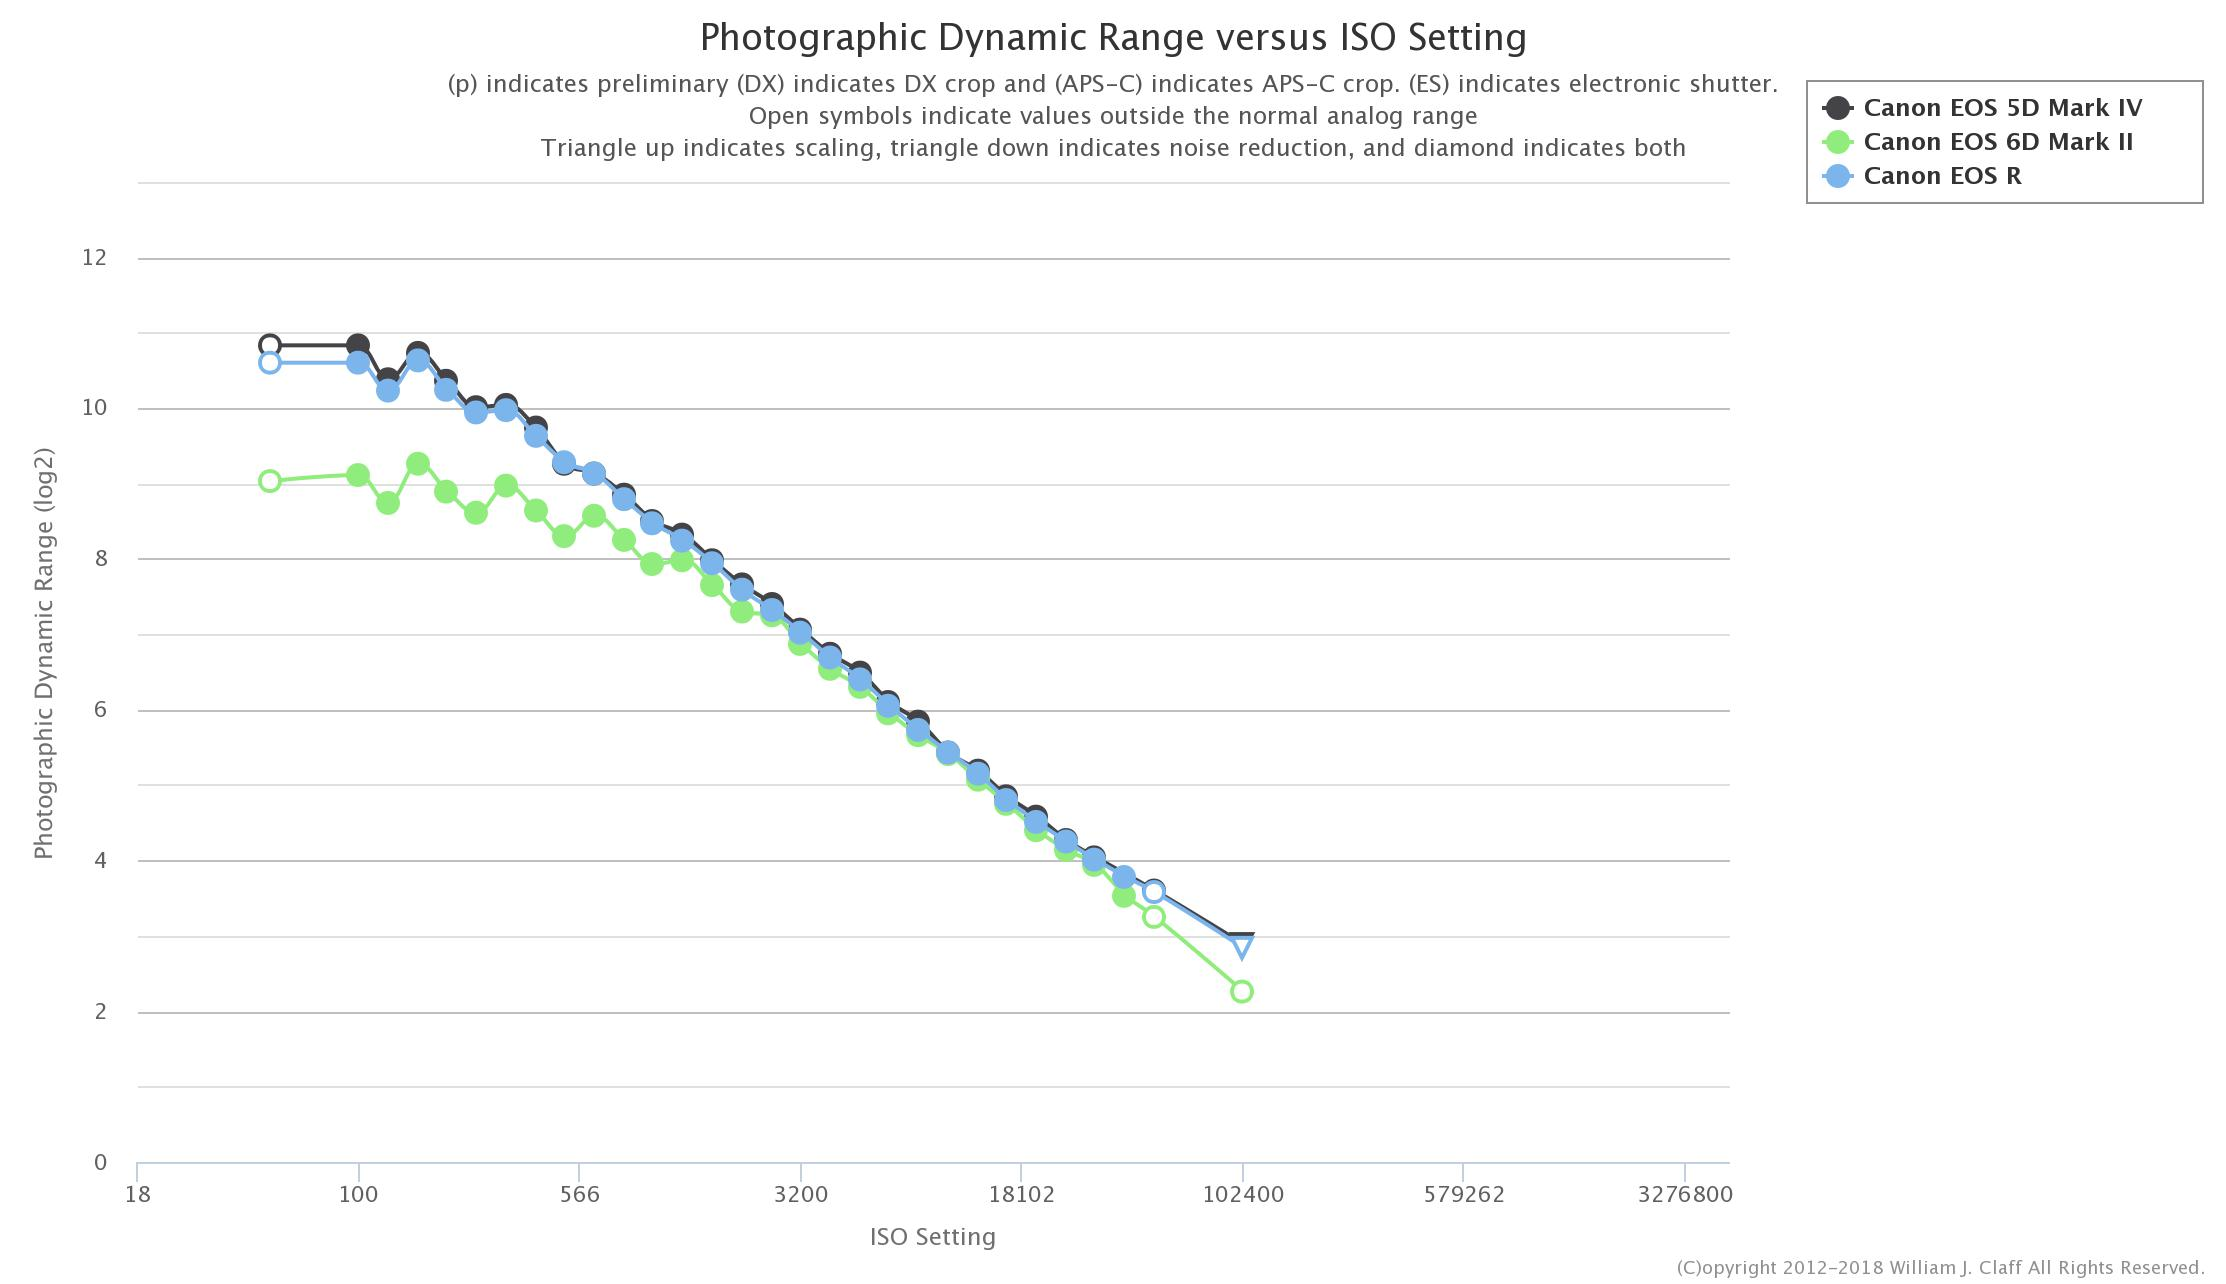 Canon EOS R Sensor Test Data Available At Photons To Photo